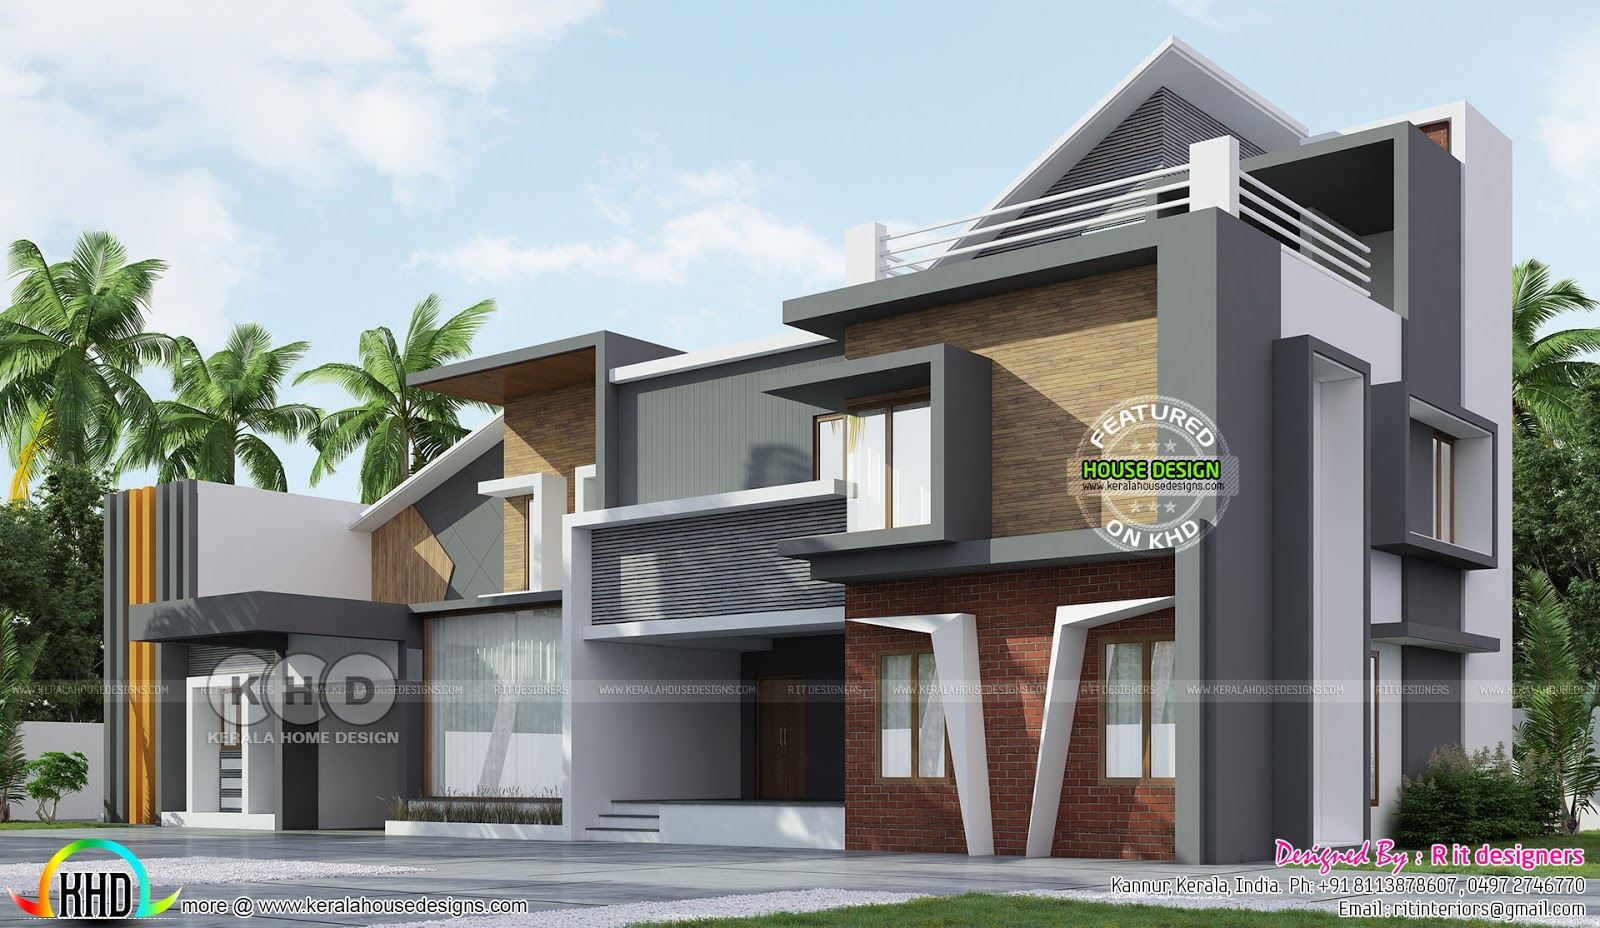 Luxury Ultra Modern House With 5 Bedrooms Kerala Home Design Bloglovin,Orange Kitchen Accessories Ideas